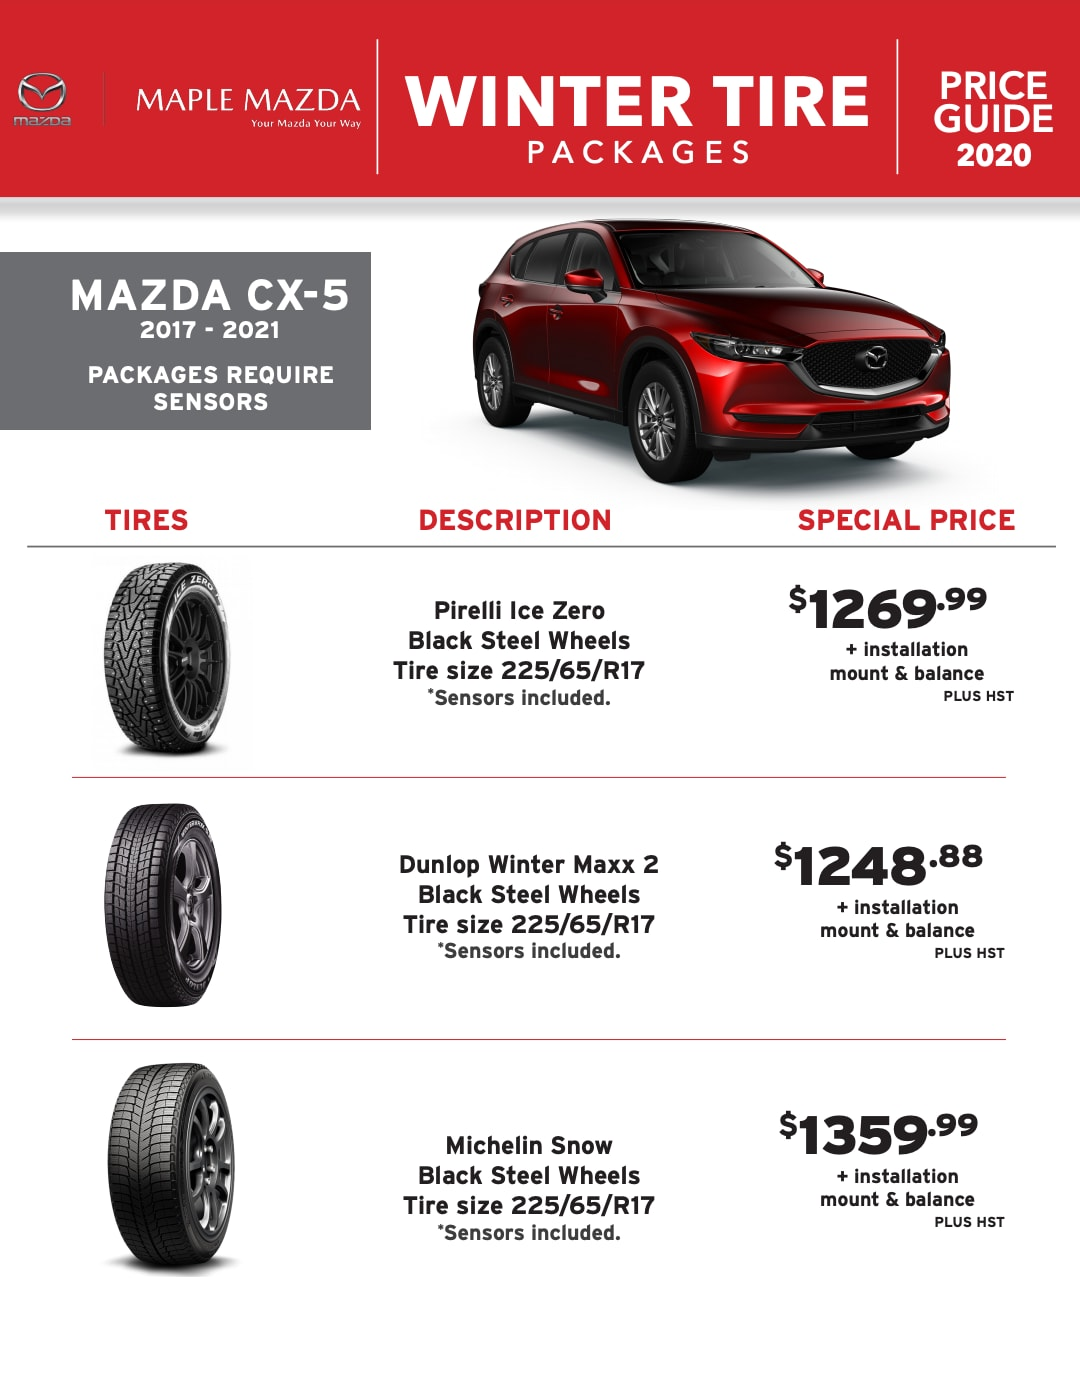 Winter Tire Packages in Maple, Ontario - MAZDA CX-5